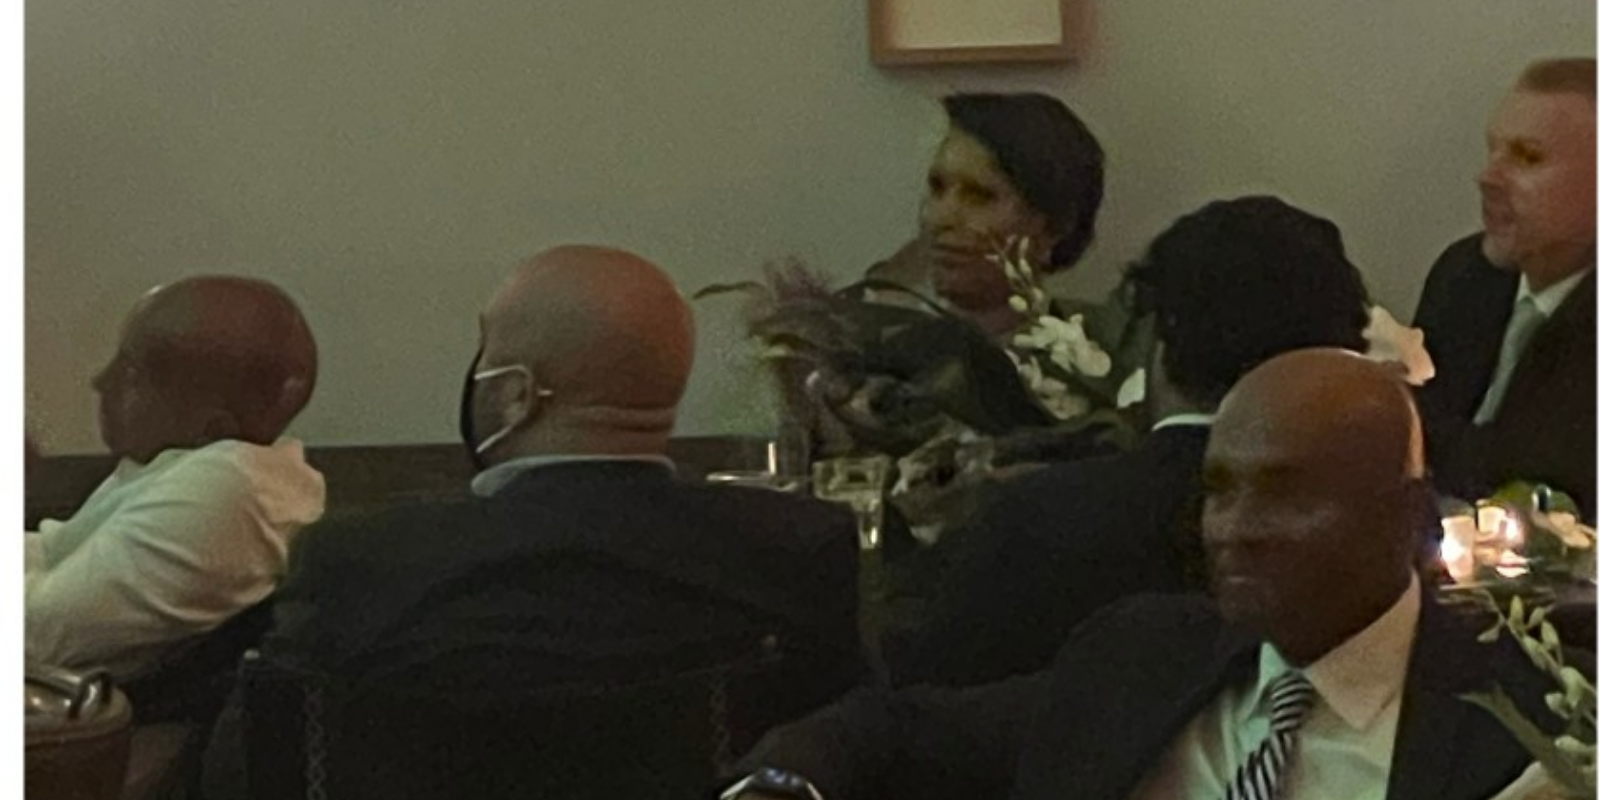 Muriel Bowser caught violating her own mask mandate on its first active day